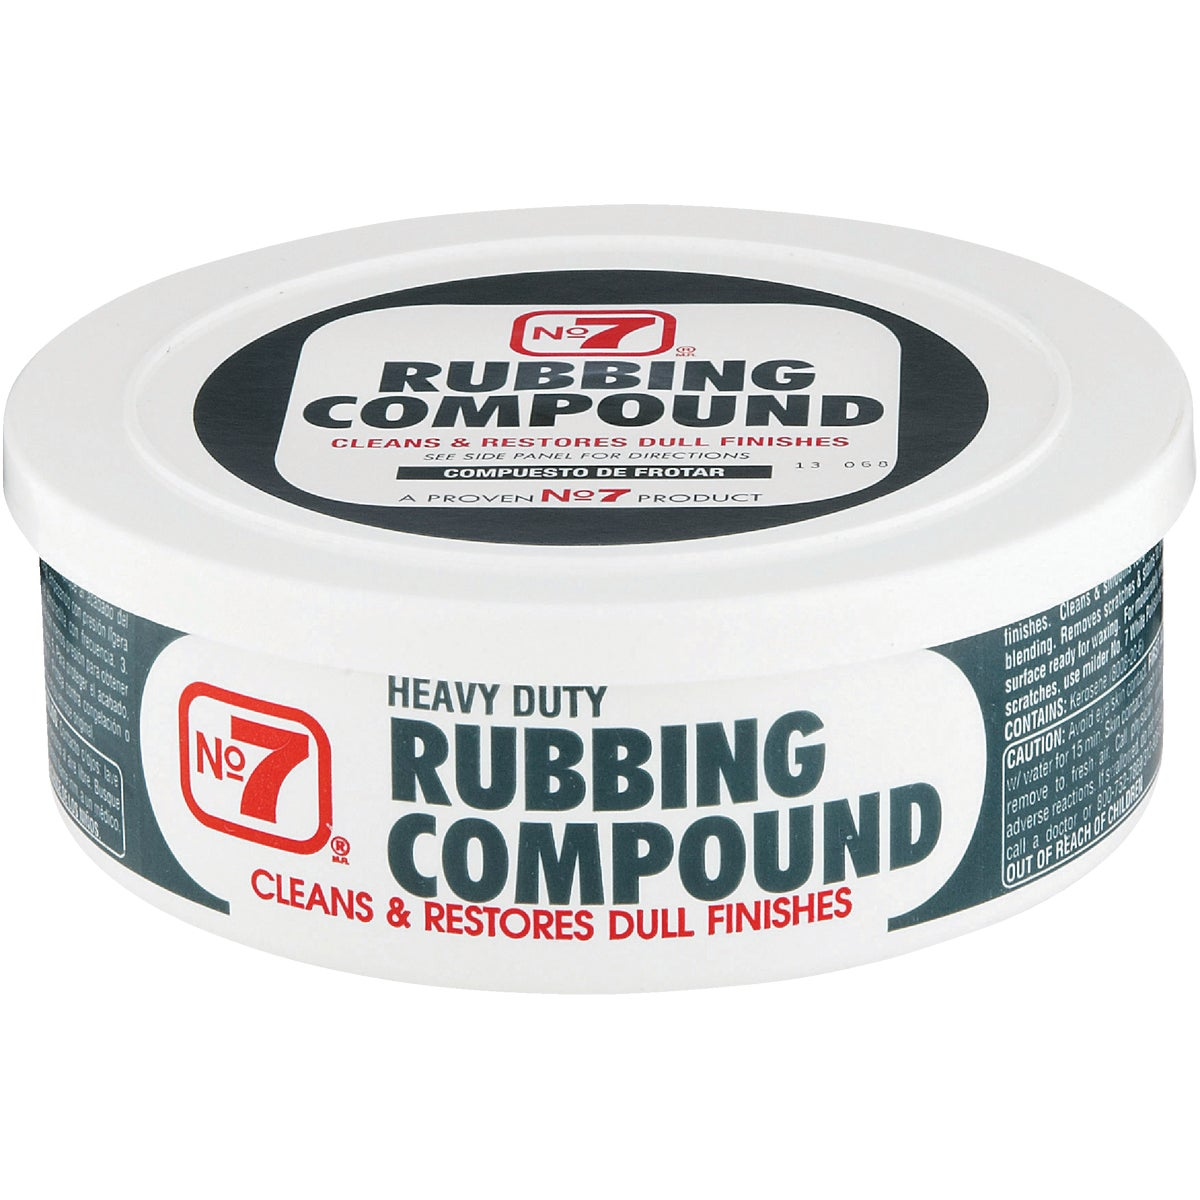 10OZ RUBBING COMPOUND - 08610 by Cyclo Industries